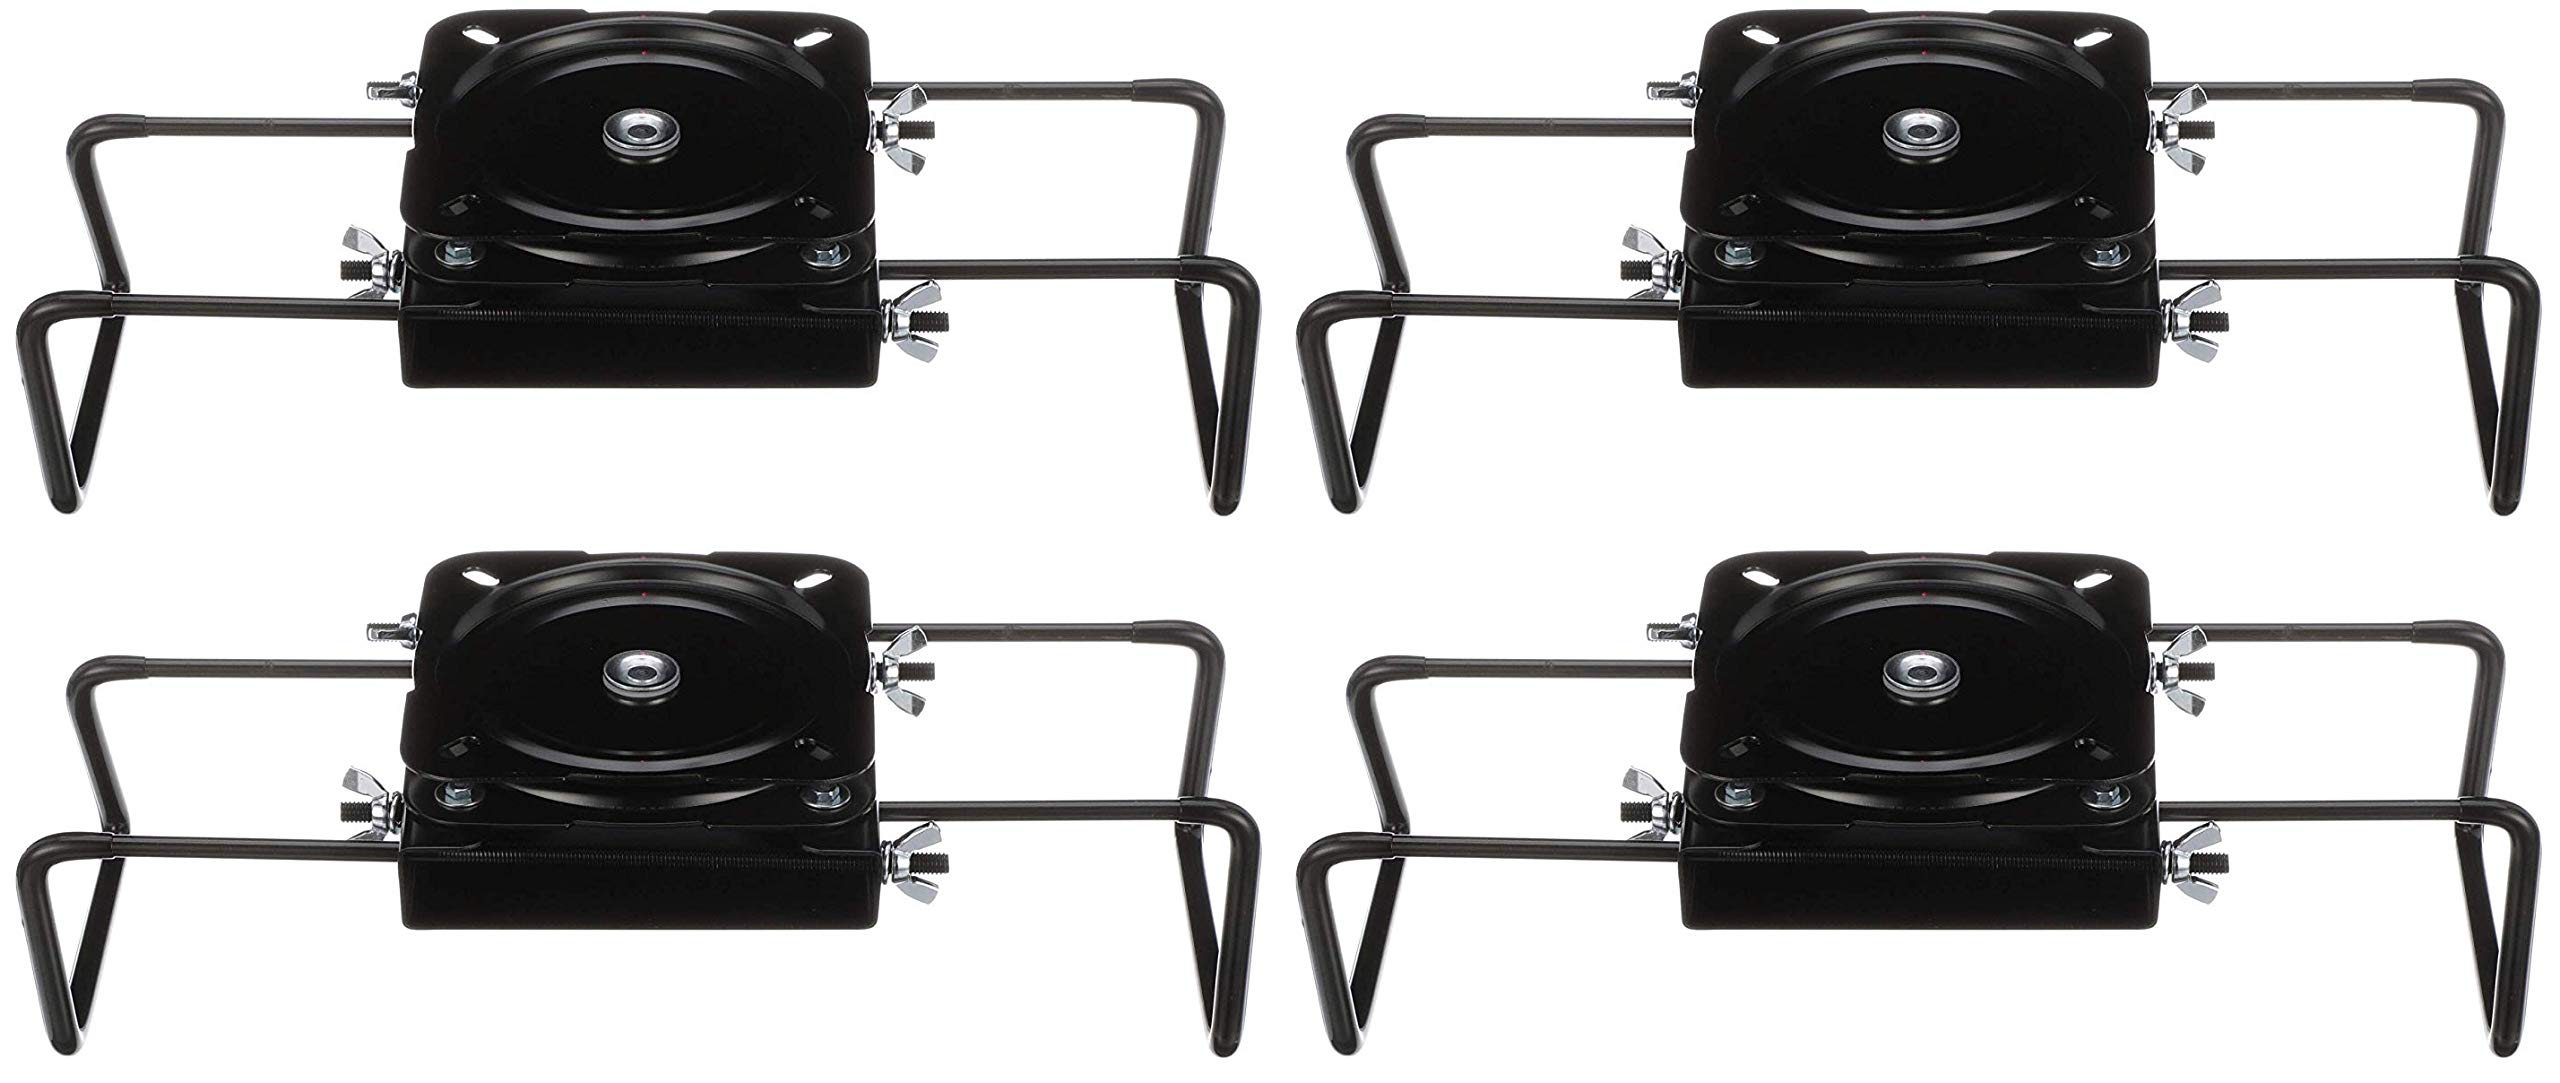 attwood Corporation Seat Mount Clamp-On with Swivel (Fоur Расk) by attwood